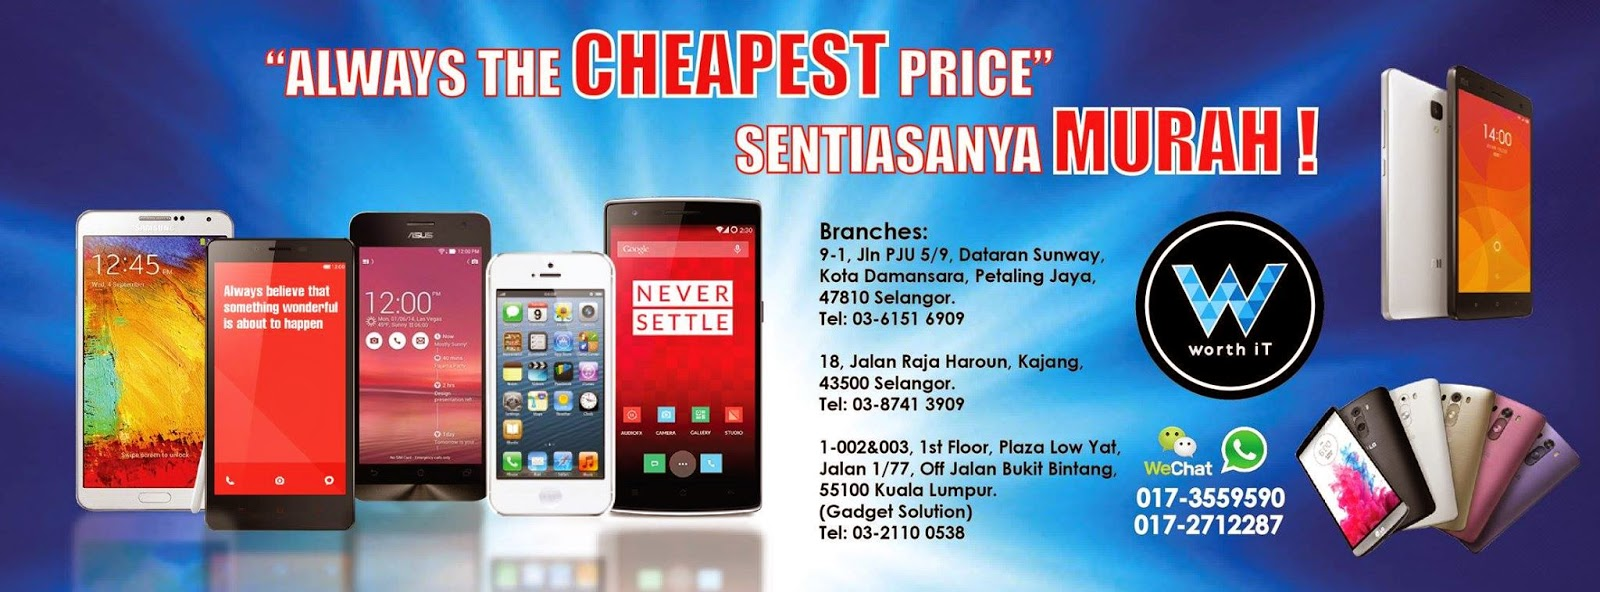 WorthIT.my - Cheapest Priced Mobile Phone Wholesale Retail Chain